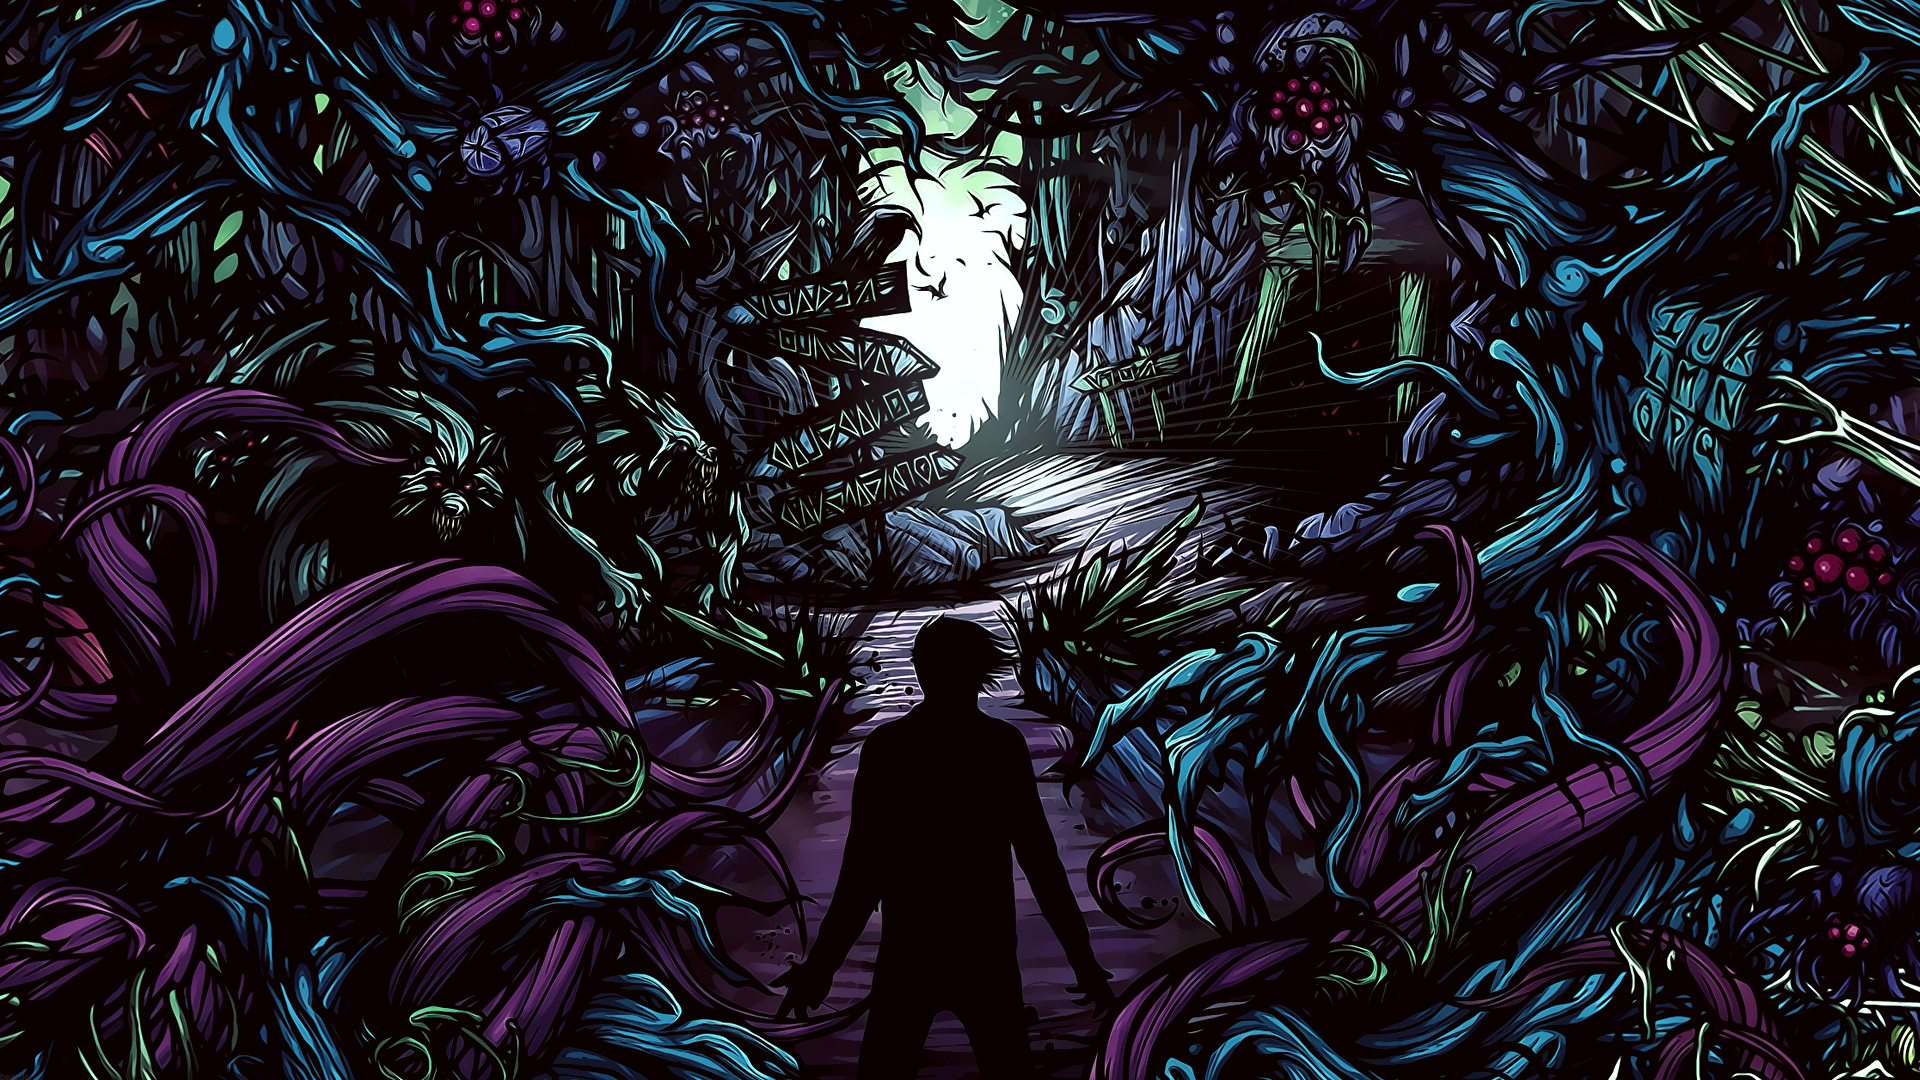 What bands have the coolest album covers for wallpapers 1920x1080